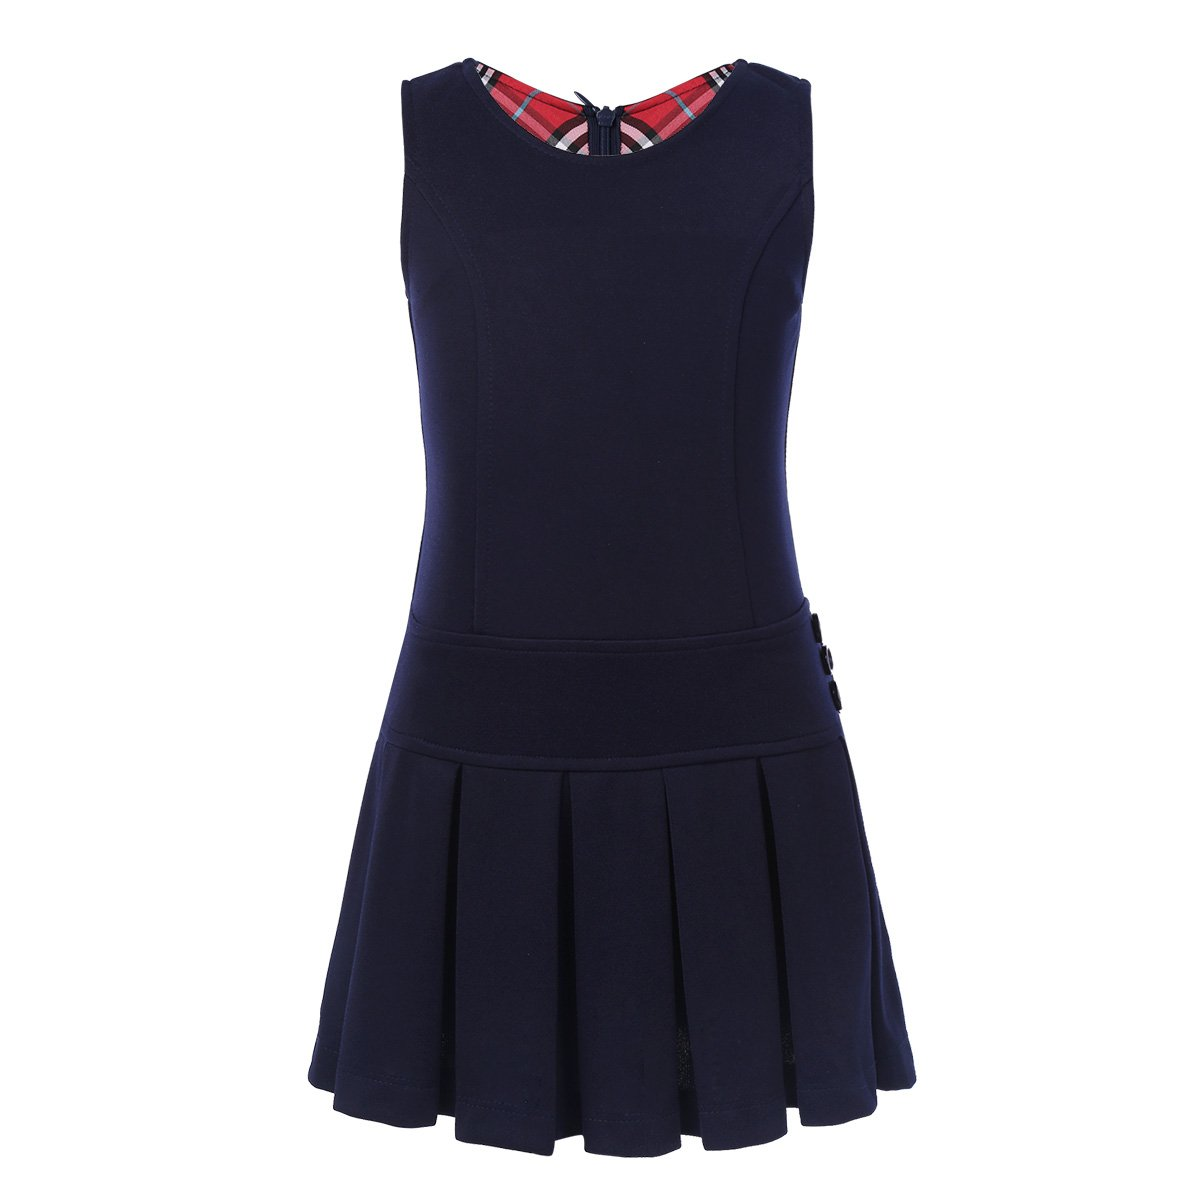 YiZYiF Girls' Kids' Stretchy Pleated Hem Durable School Uniform Jumper Dress Skirt Size 2-9 Navy Blue 7-8